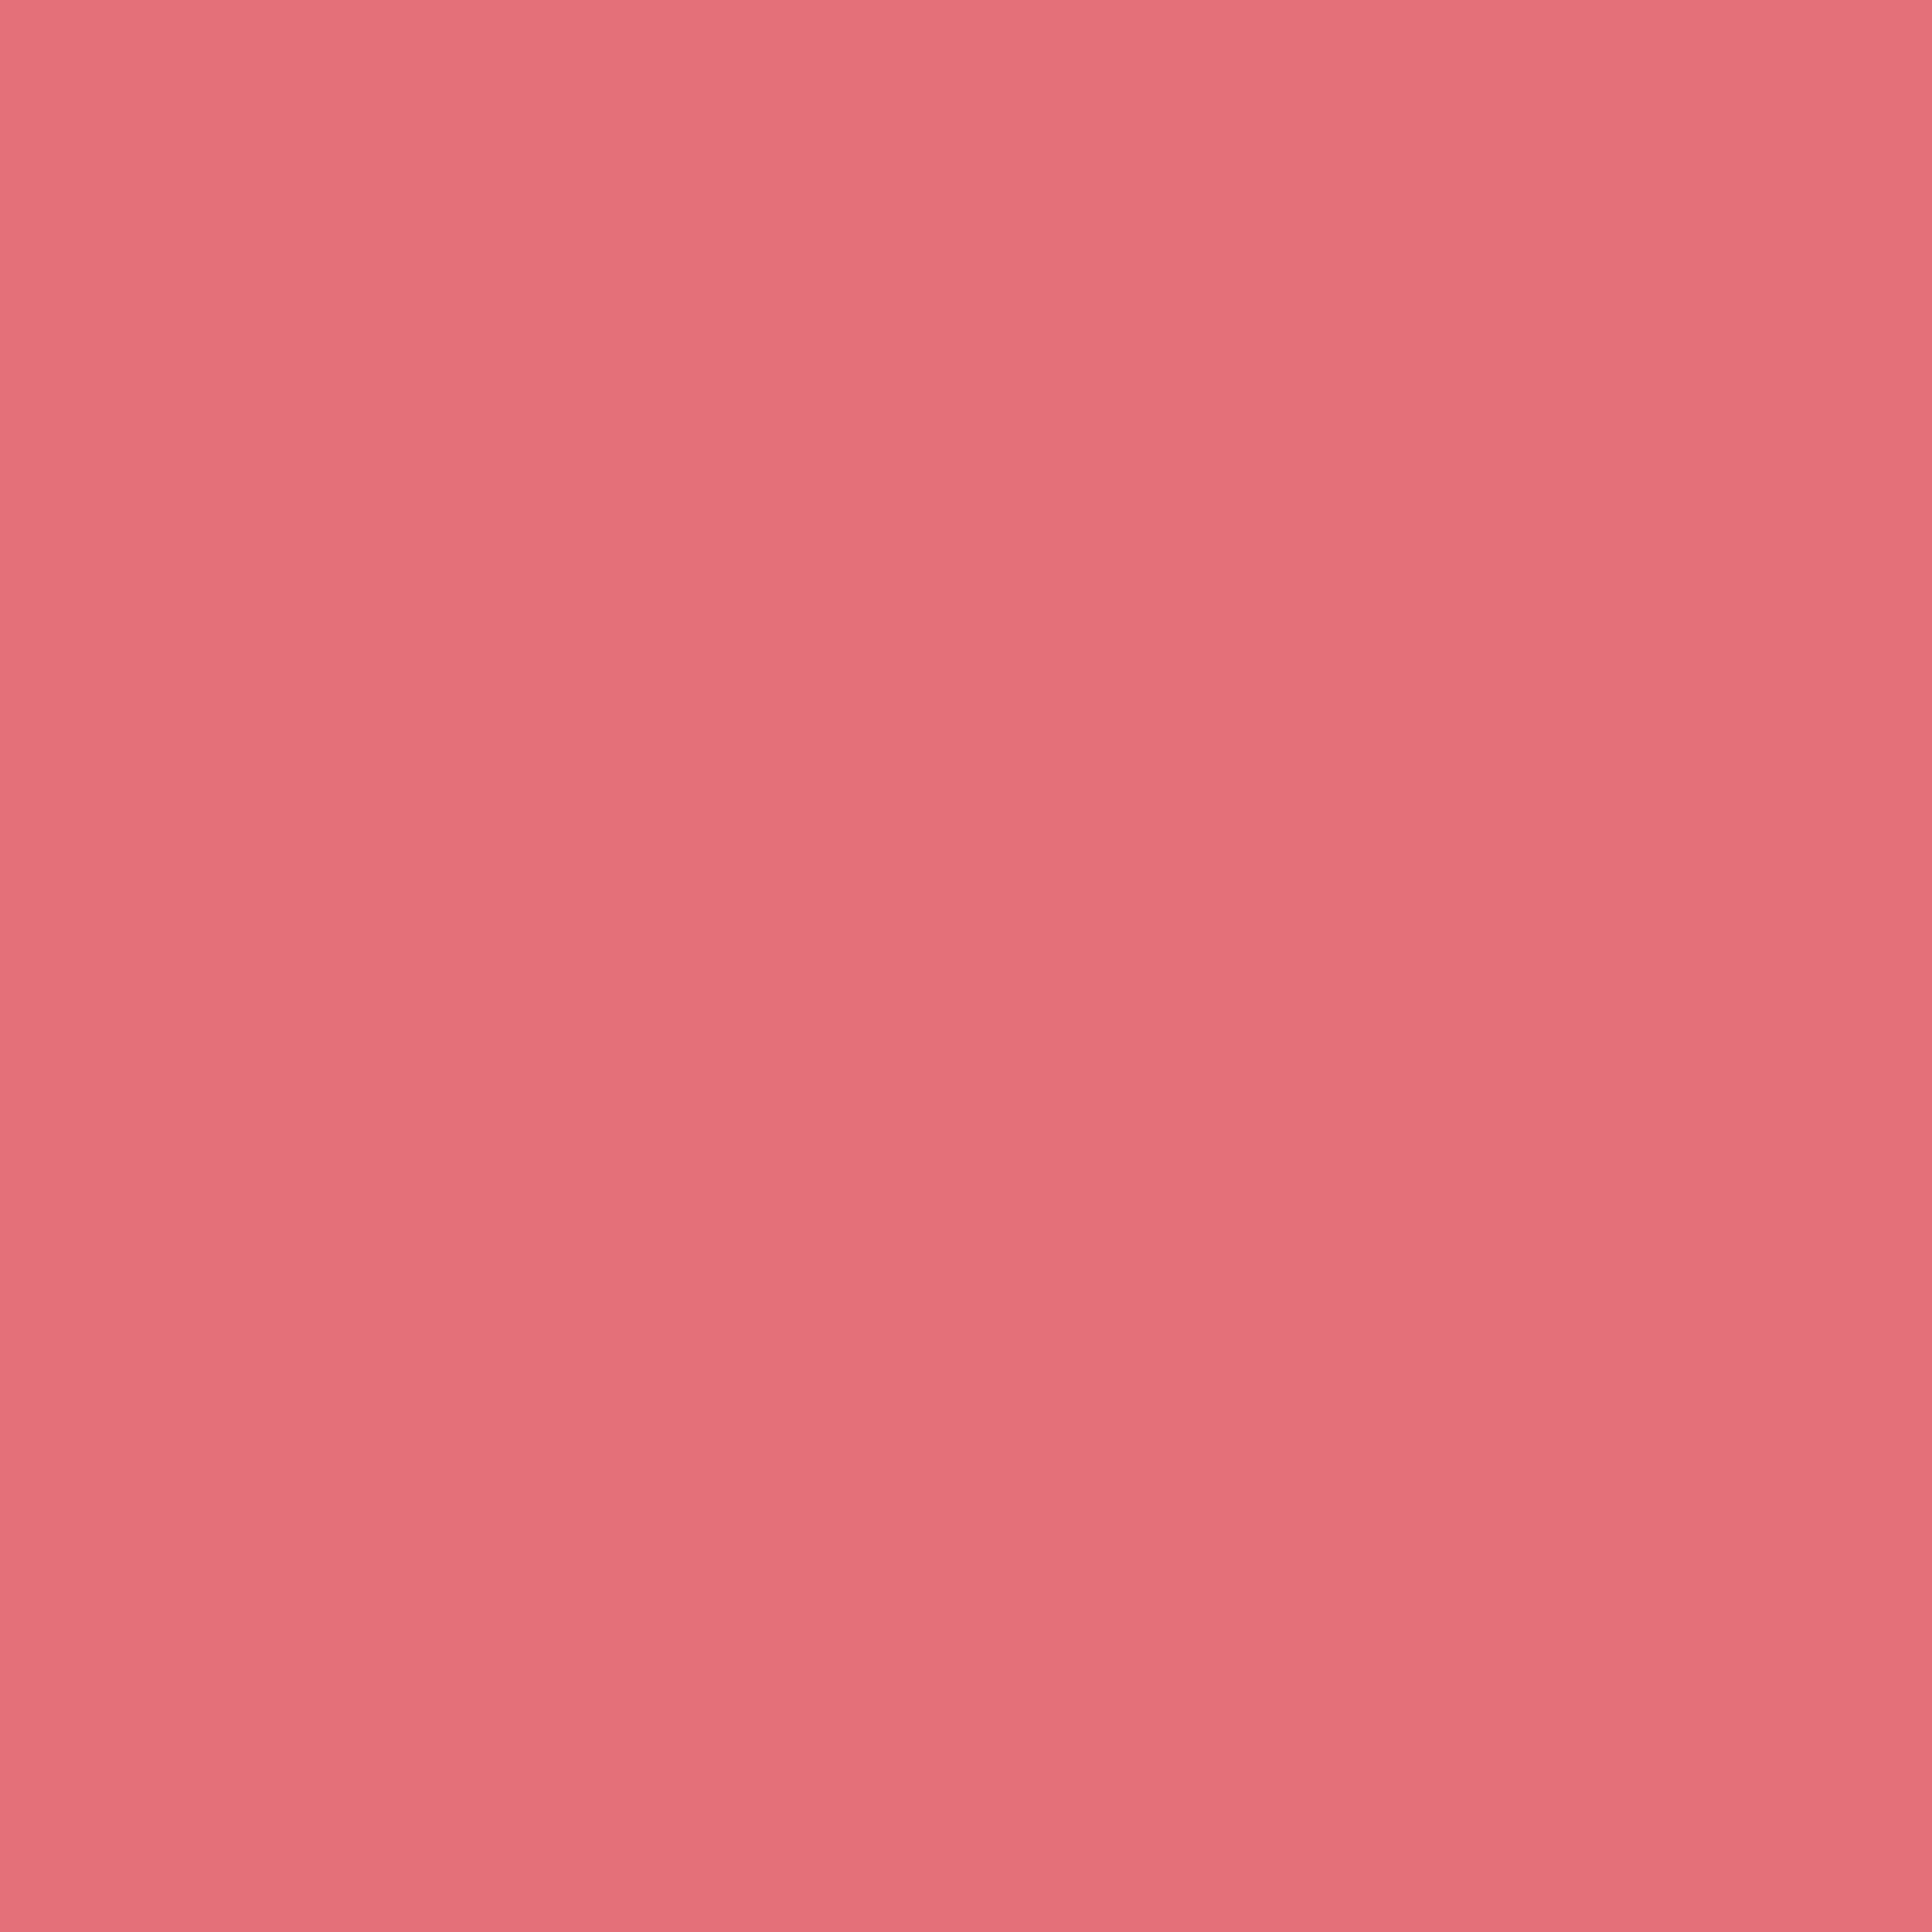 2732x2732 Tango Pink Solid Color Background